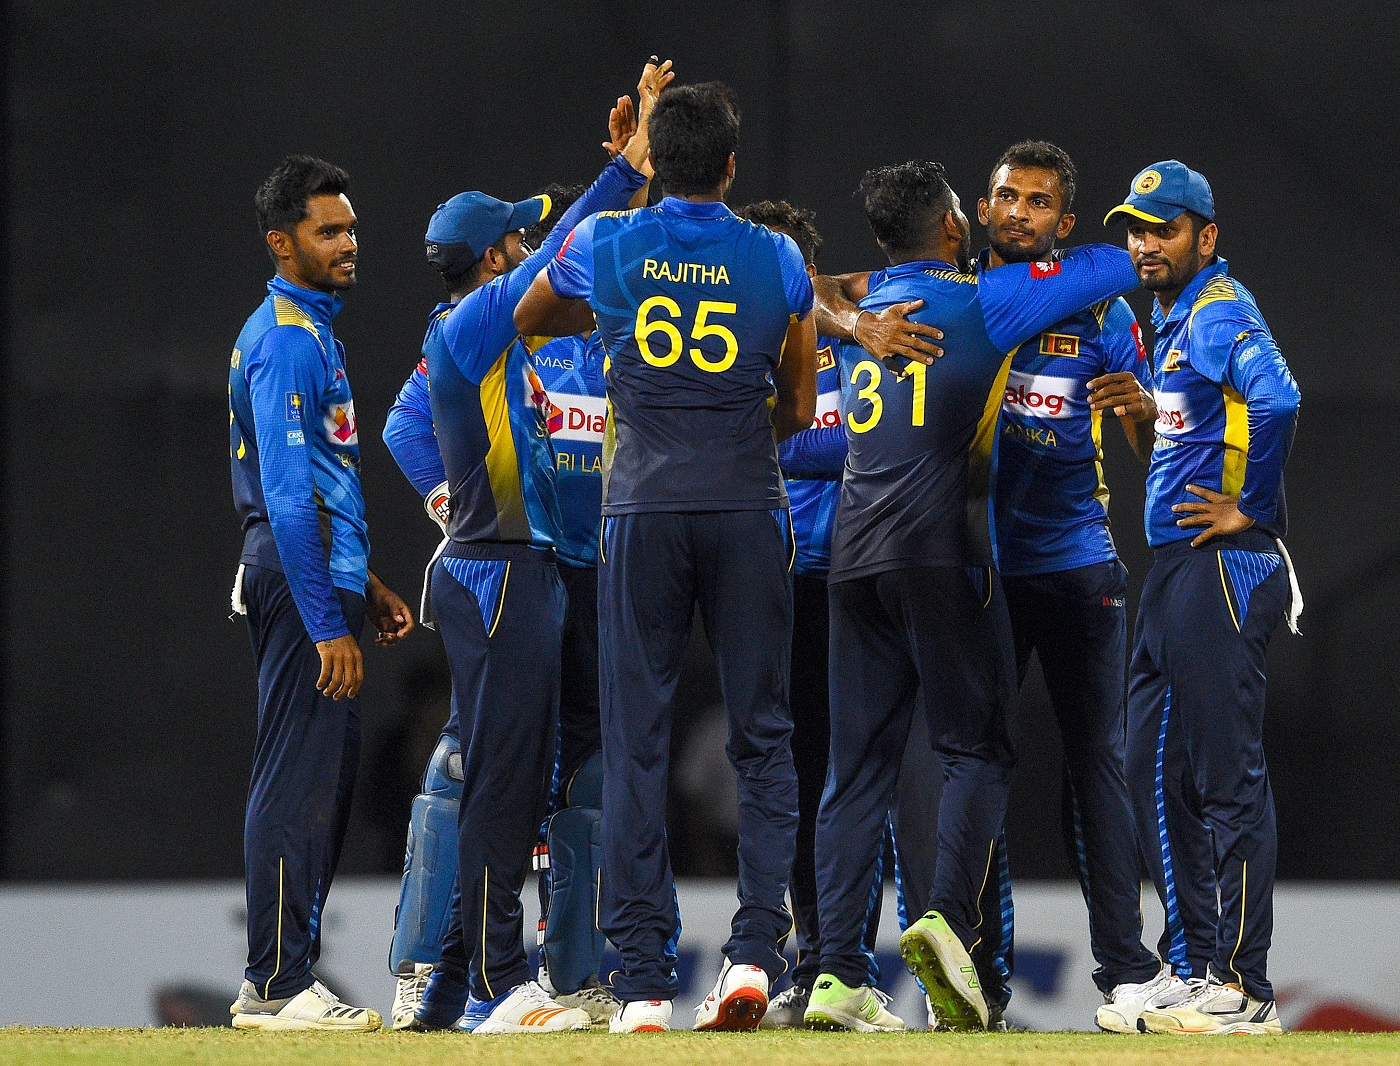 Sri Lanka tour of Pakistan in jeopardy after warning of possible terrorist threat